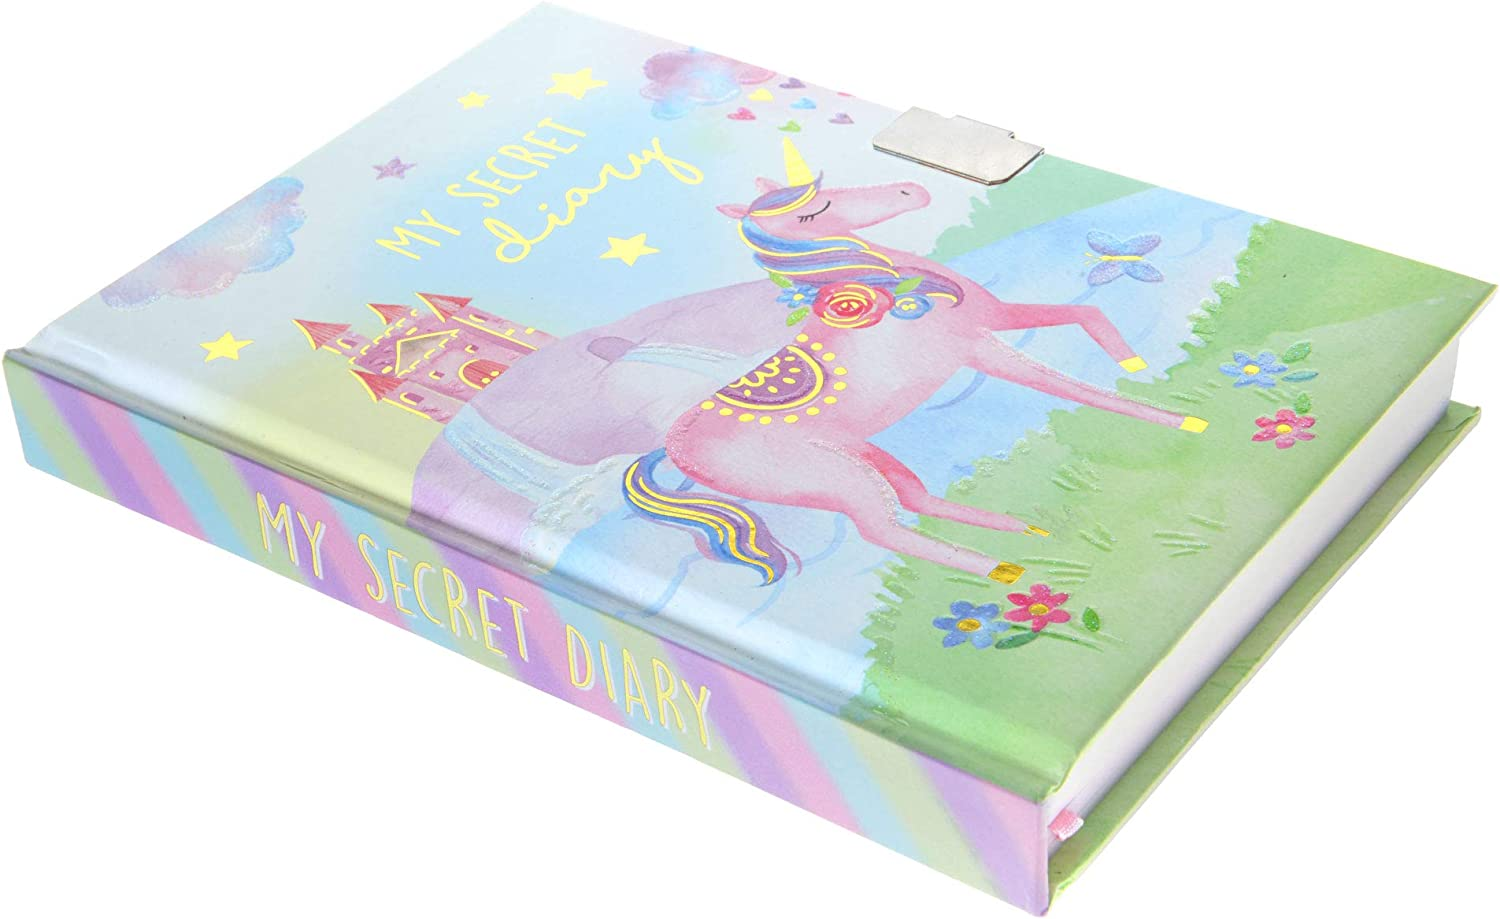 Jewelkeeper Girls Unicorn Secret Diary with Heart Shaped Lock and Key Private Journal